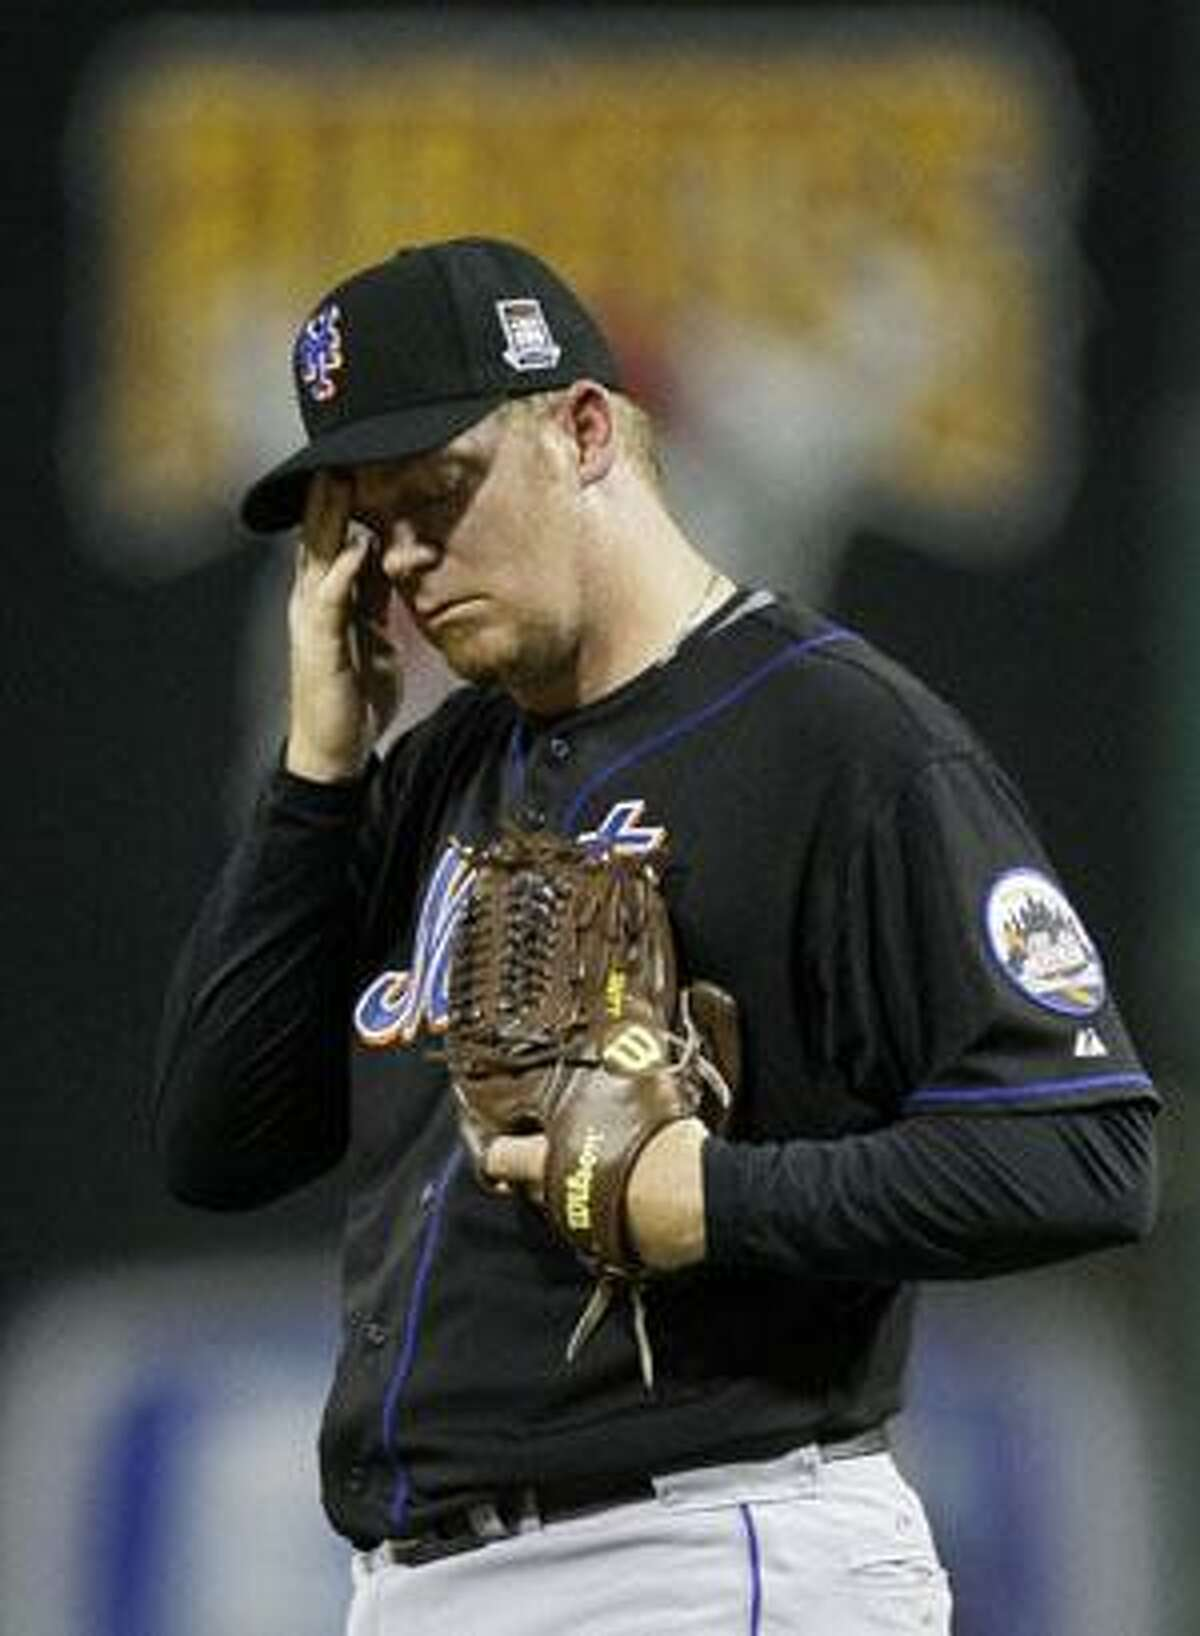 New York Mets pitcher J.J. Putz pauses on the mound during the five-run eighth inning against the Pittsburgh Pirates Monday in Pittsburgh. The Pirates won 8-5. (AP Photo/Gene J. Puskar)